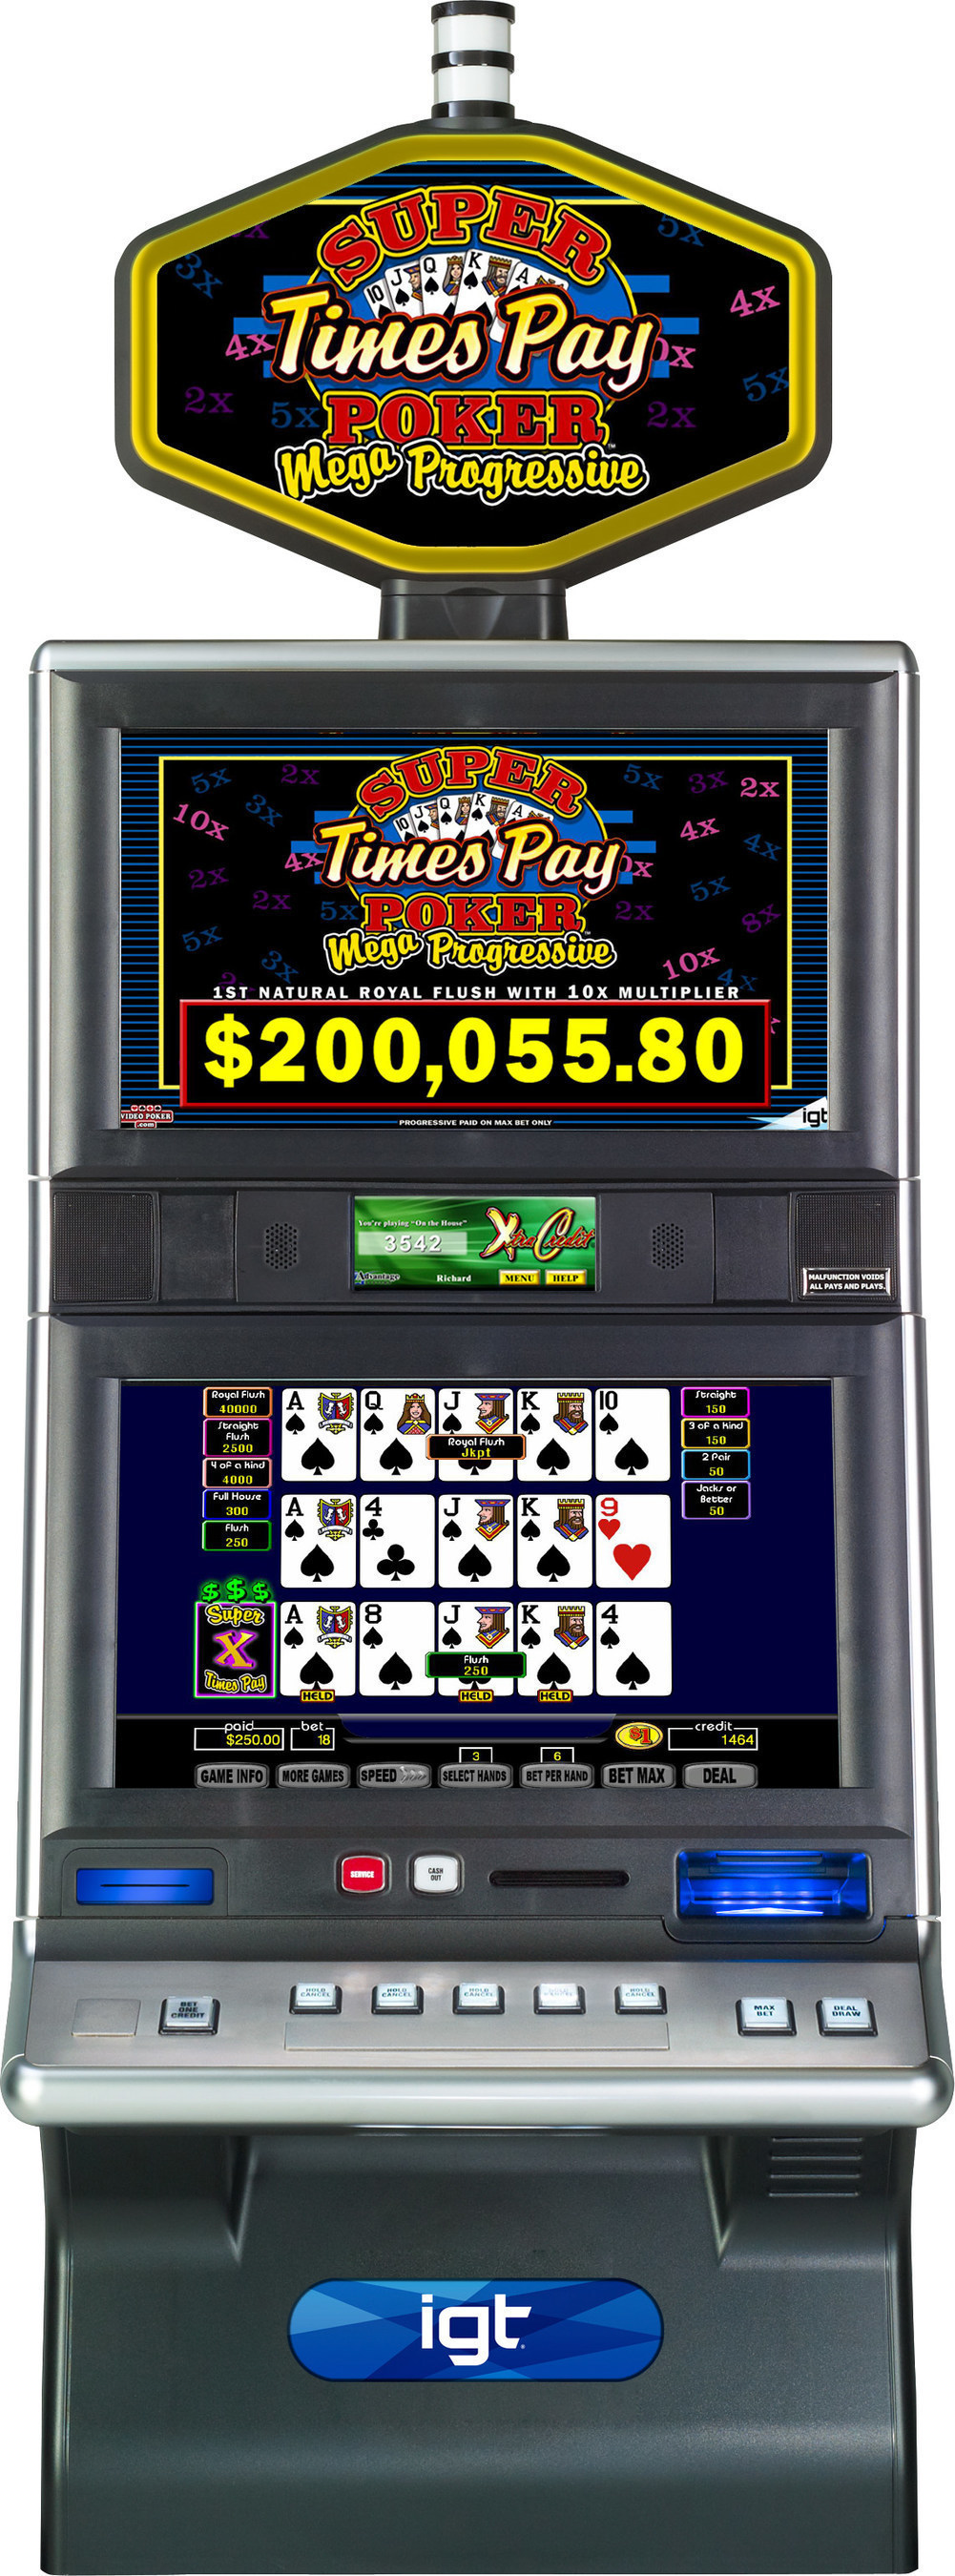 IGT Expands Wide Area Progressive Leadership with First-Ever Video Poker Interstate Link